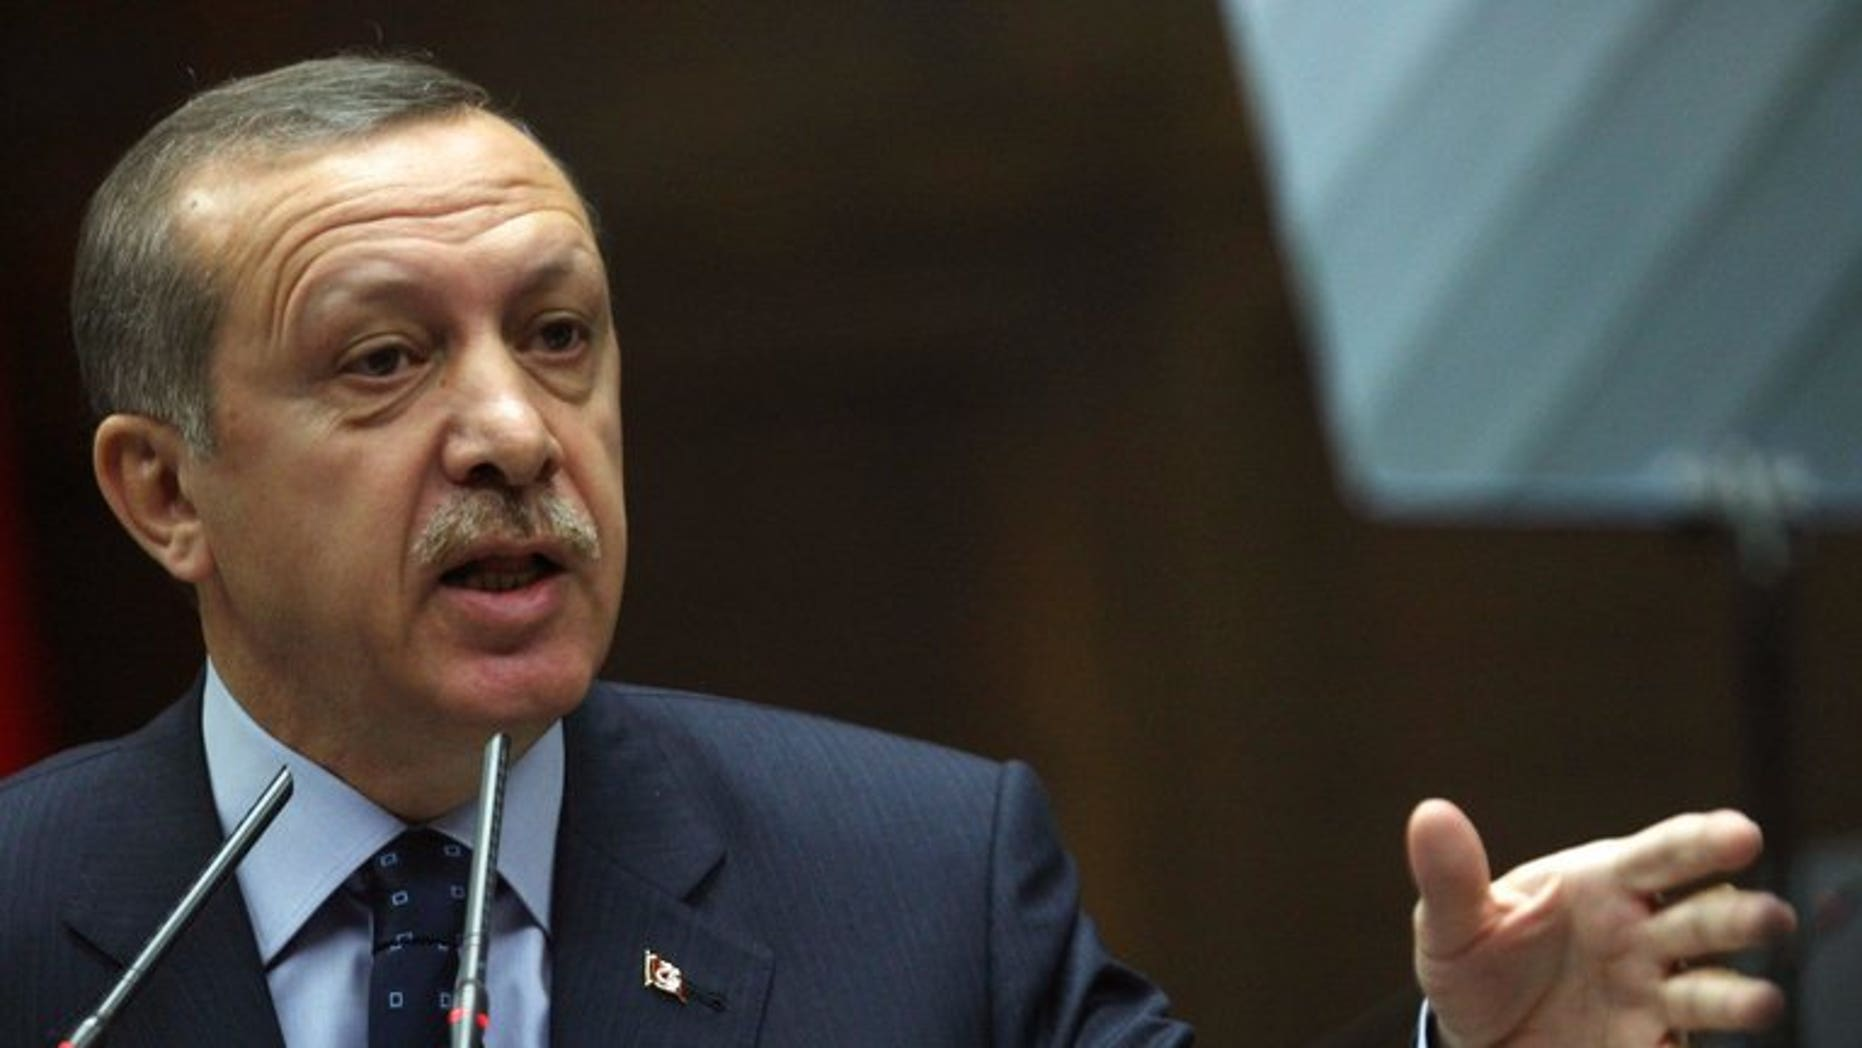 Turkey's Prime Minister Recep Tayyip Erdogan holds a meeting at the Turkish parliament in Ankara on May 14, 2013. Erdogan warned against any plans for an autonomous Kurdish region in northern Syria as officials met the leader of the war-torn country's main Kurdish group Friday.